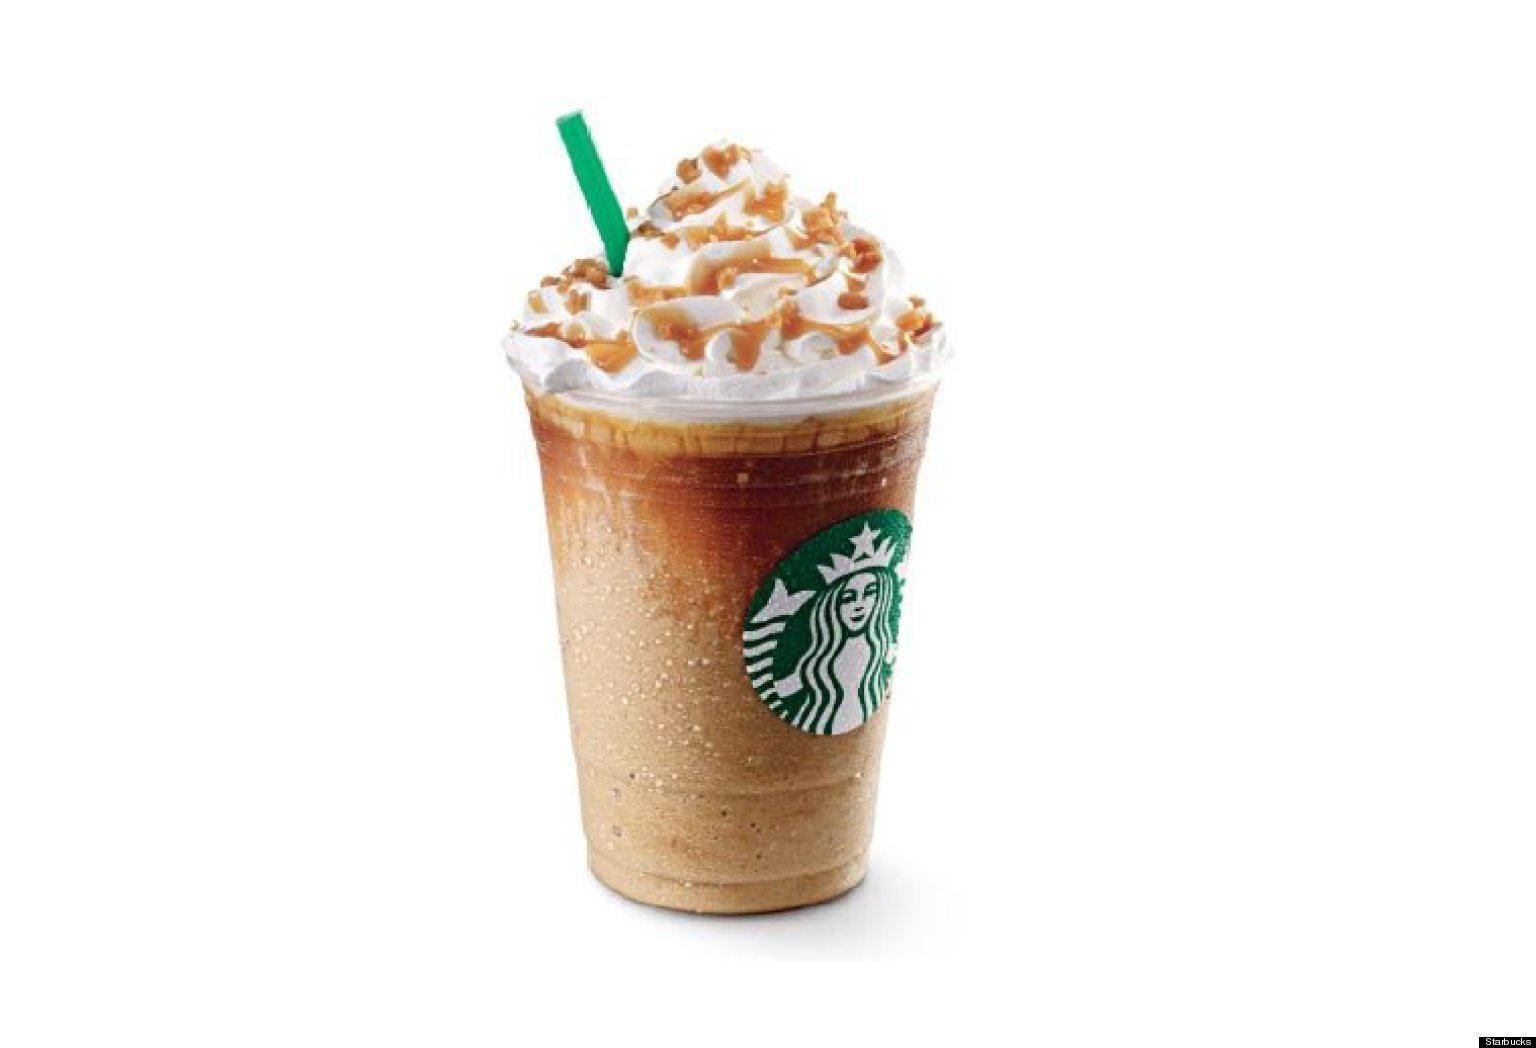 1536x1048 Starbucks Unveils Spring 2013 Offerings New Drinks, Salads